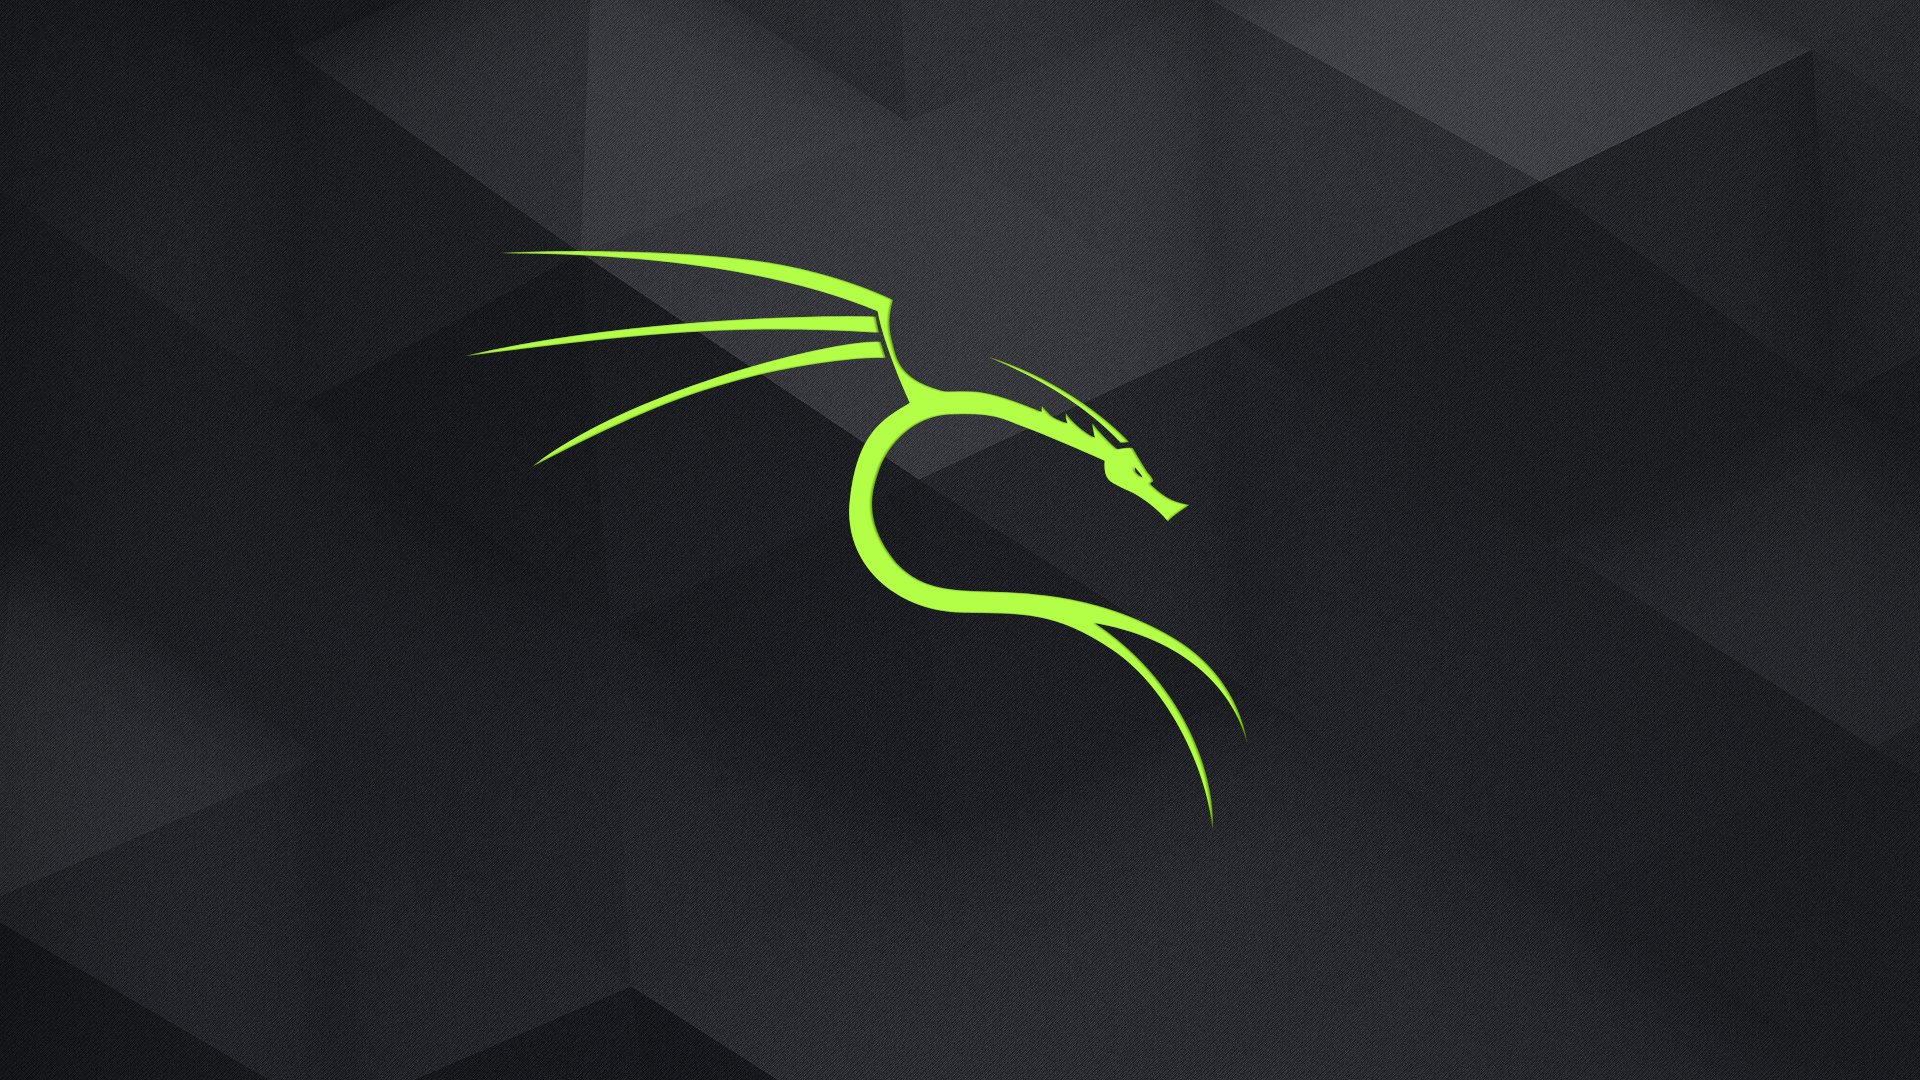 1920x1080 GitHub - dorianpro/kali-linux-wallpapers: A set of dedicated Kali ...